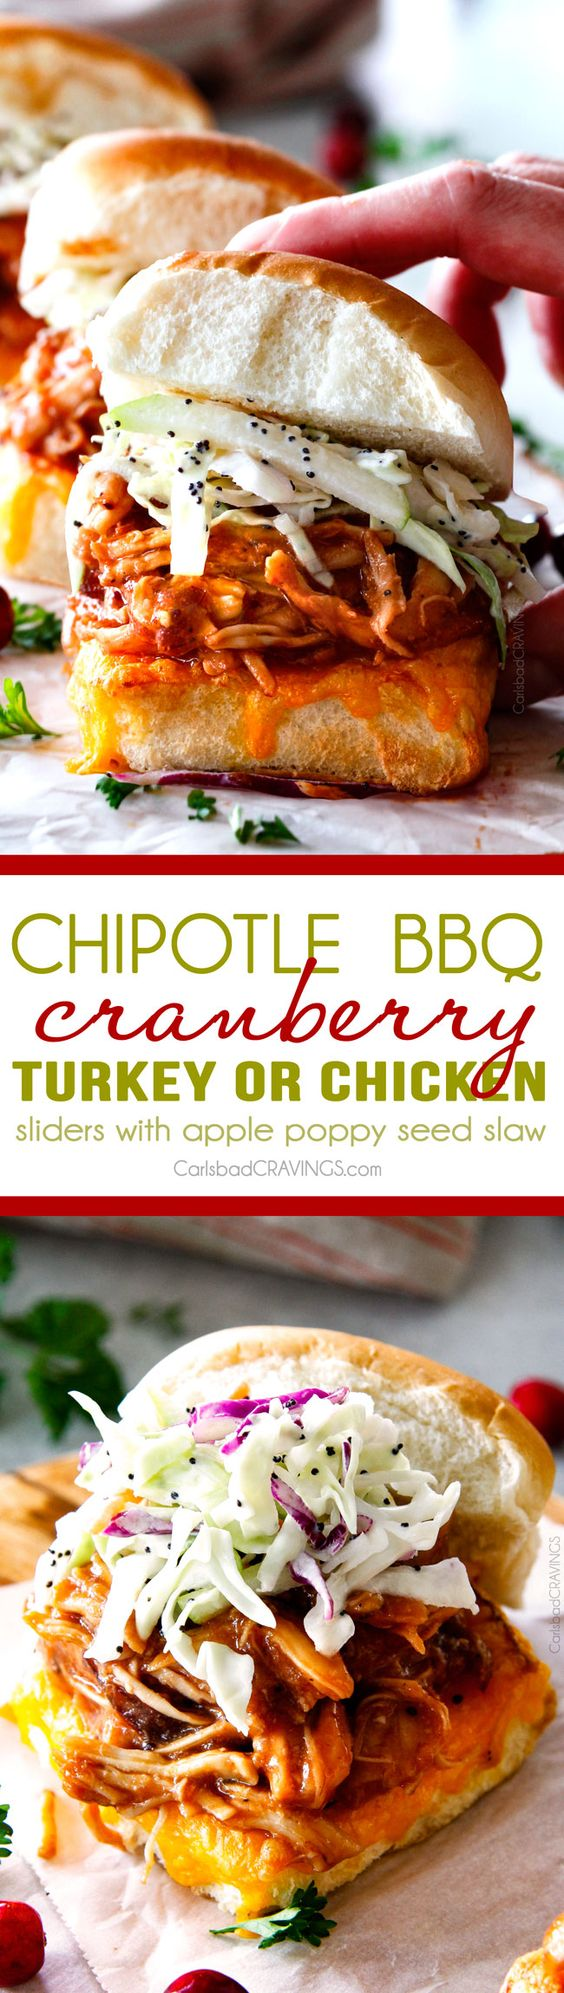 These 20 Minute Chipotle BBQ Cranberry Turkey Sliders (or chicken!) are INCREDIBLE!  I was eating the smothered turkey out of the pan!  the perfect way to devour your Thanksgiving turkey leftovers or SO good you will want to make them forever and ever with chicken!  And don't skip the crunchy, sweet and tangy out of this world Apple Poppy Seed Slaw!   via @carlsbadcraving